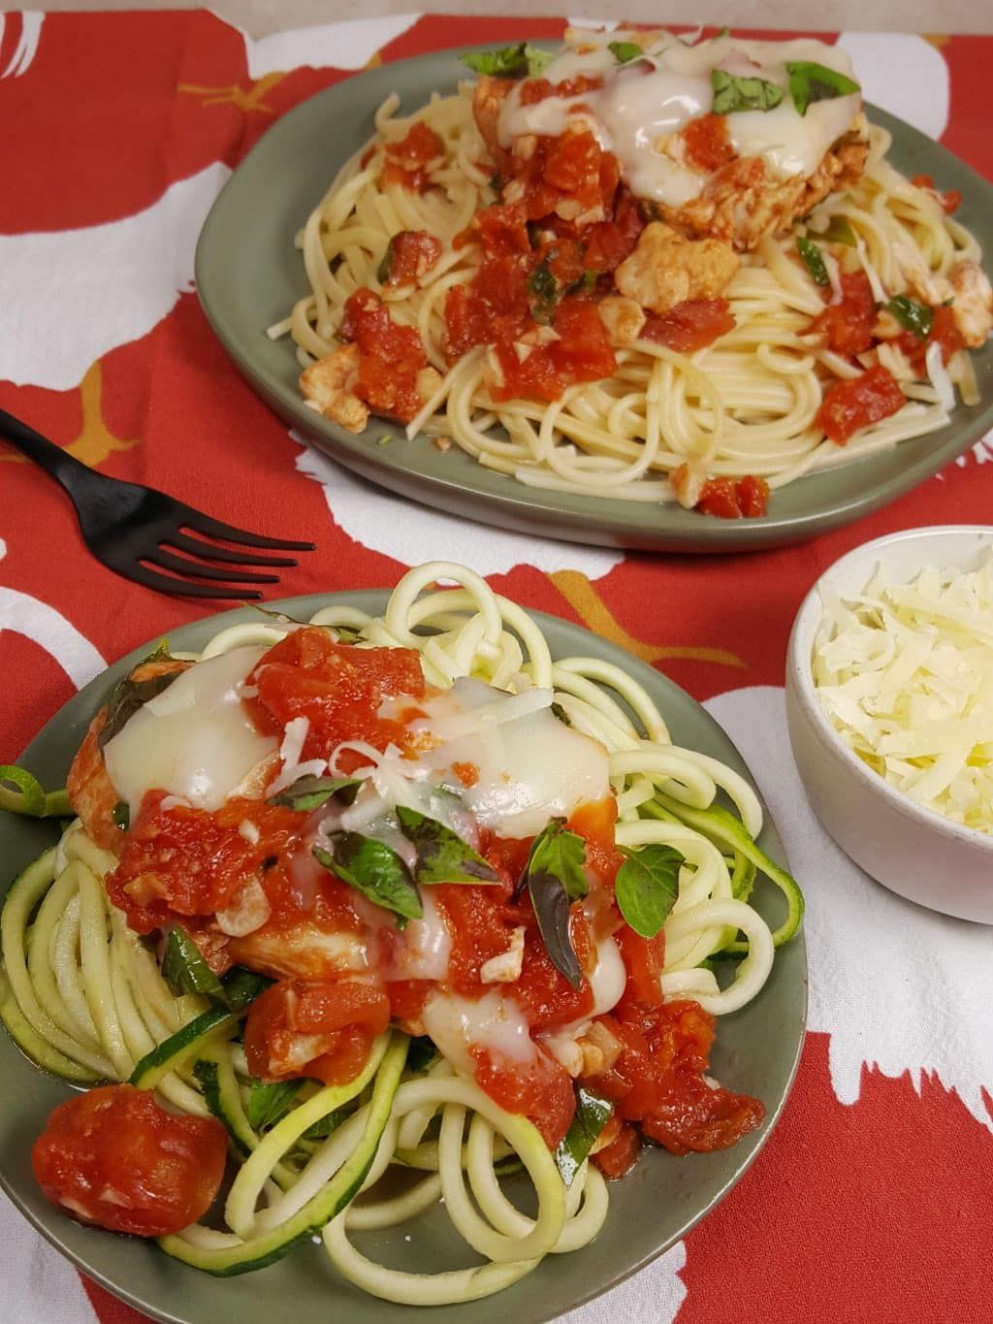 Healthy Zoodles Recipes   Food recipes, Zoodle recipes ..